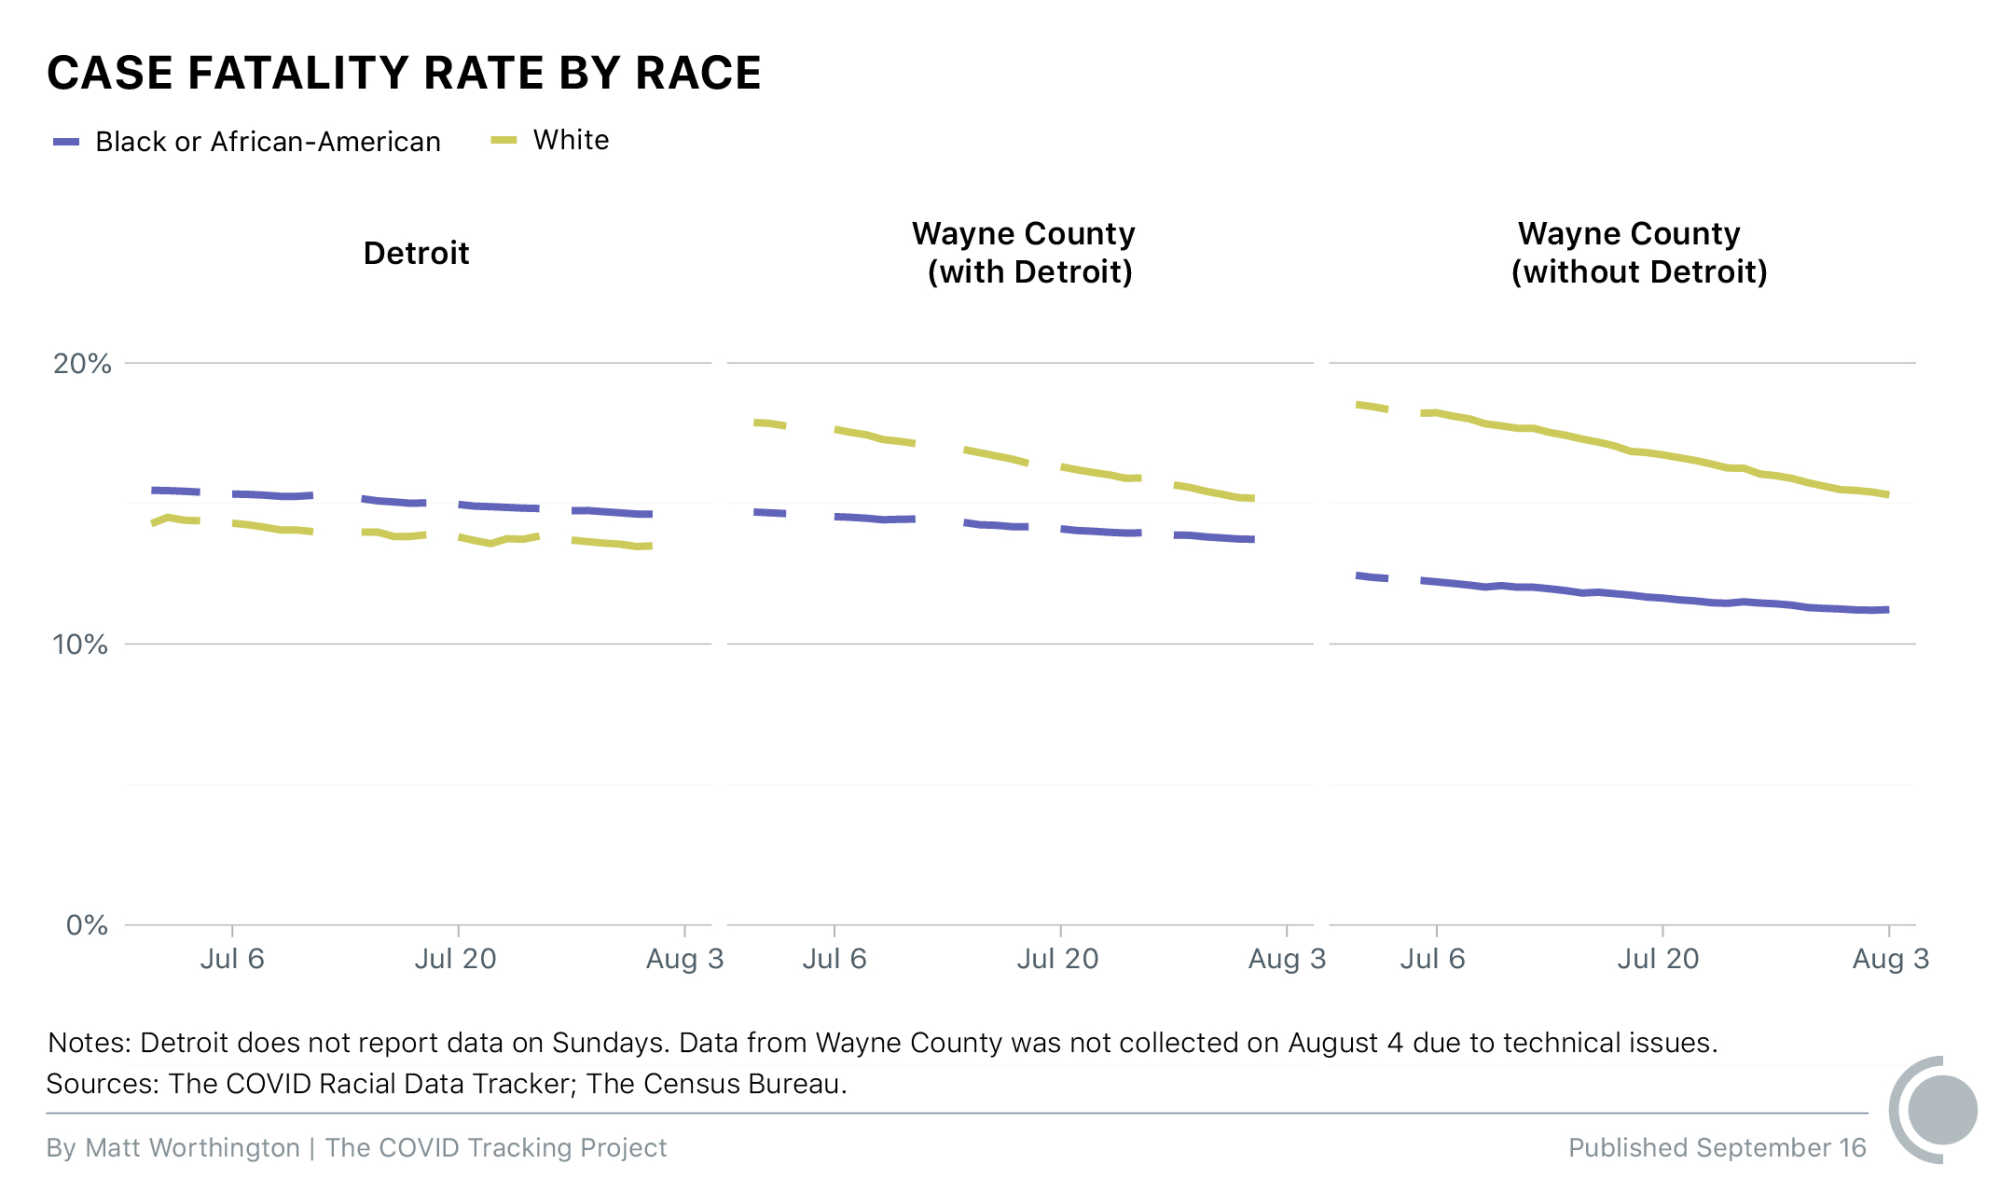 Case fatality rate by race